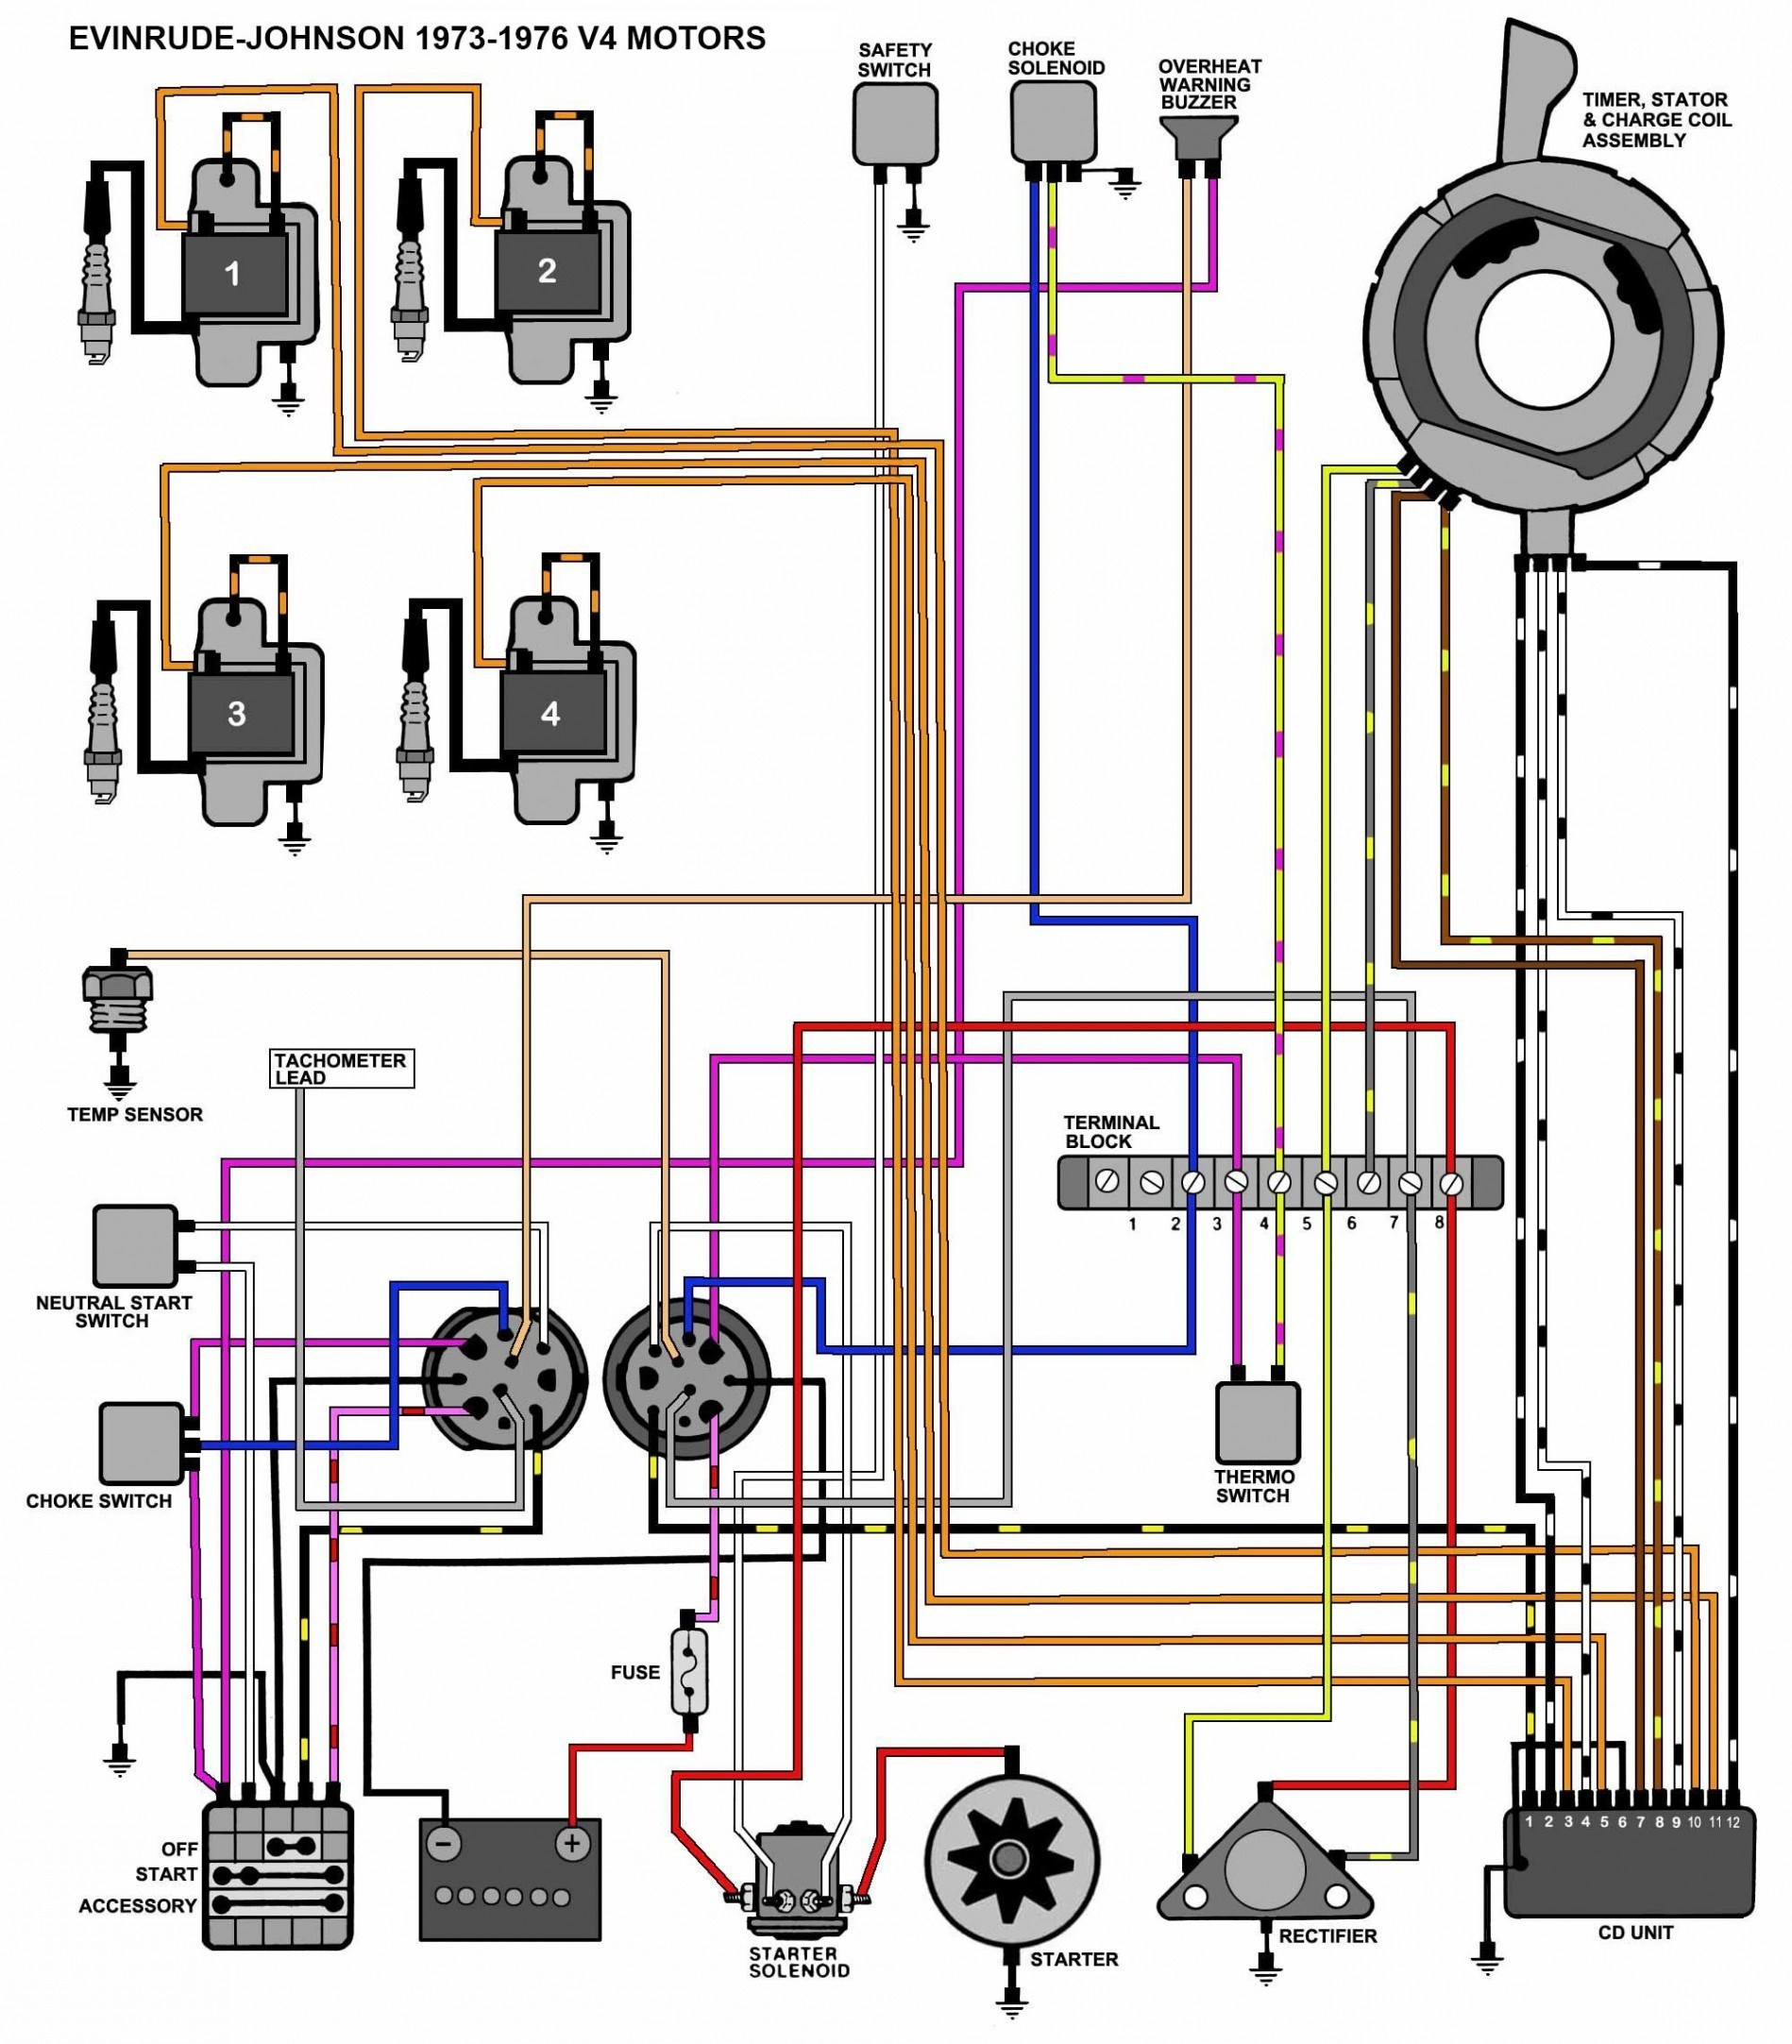 Miraculous Boat Wiring Harness Kit Wiring Diagram Database Wiring Cloud Staixaidewilluminateatxorg